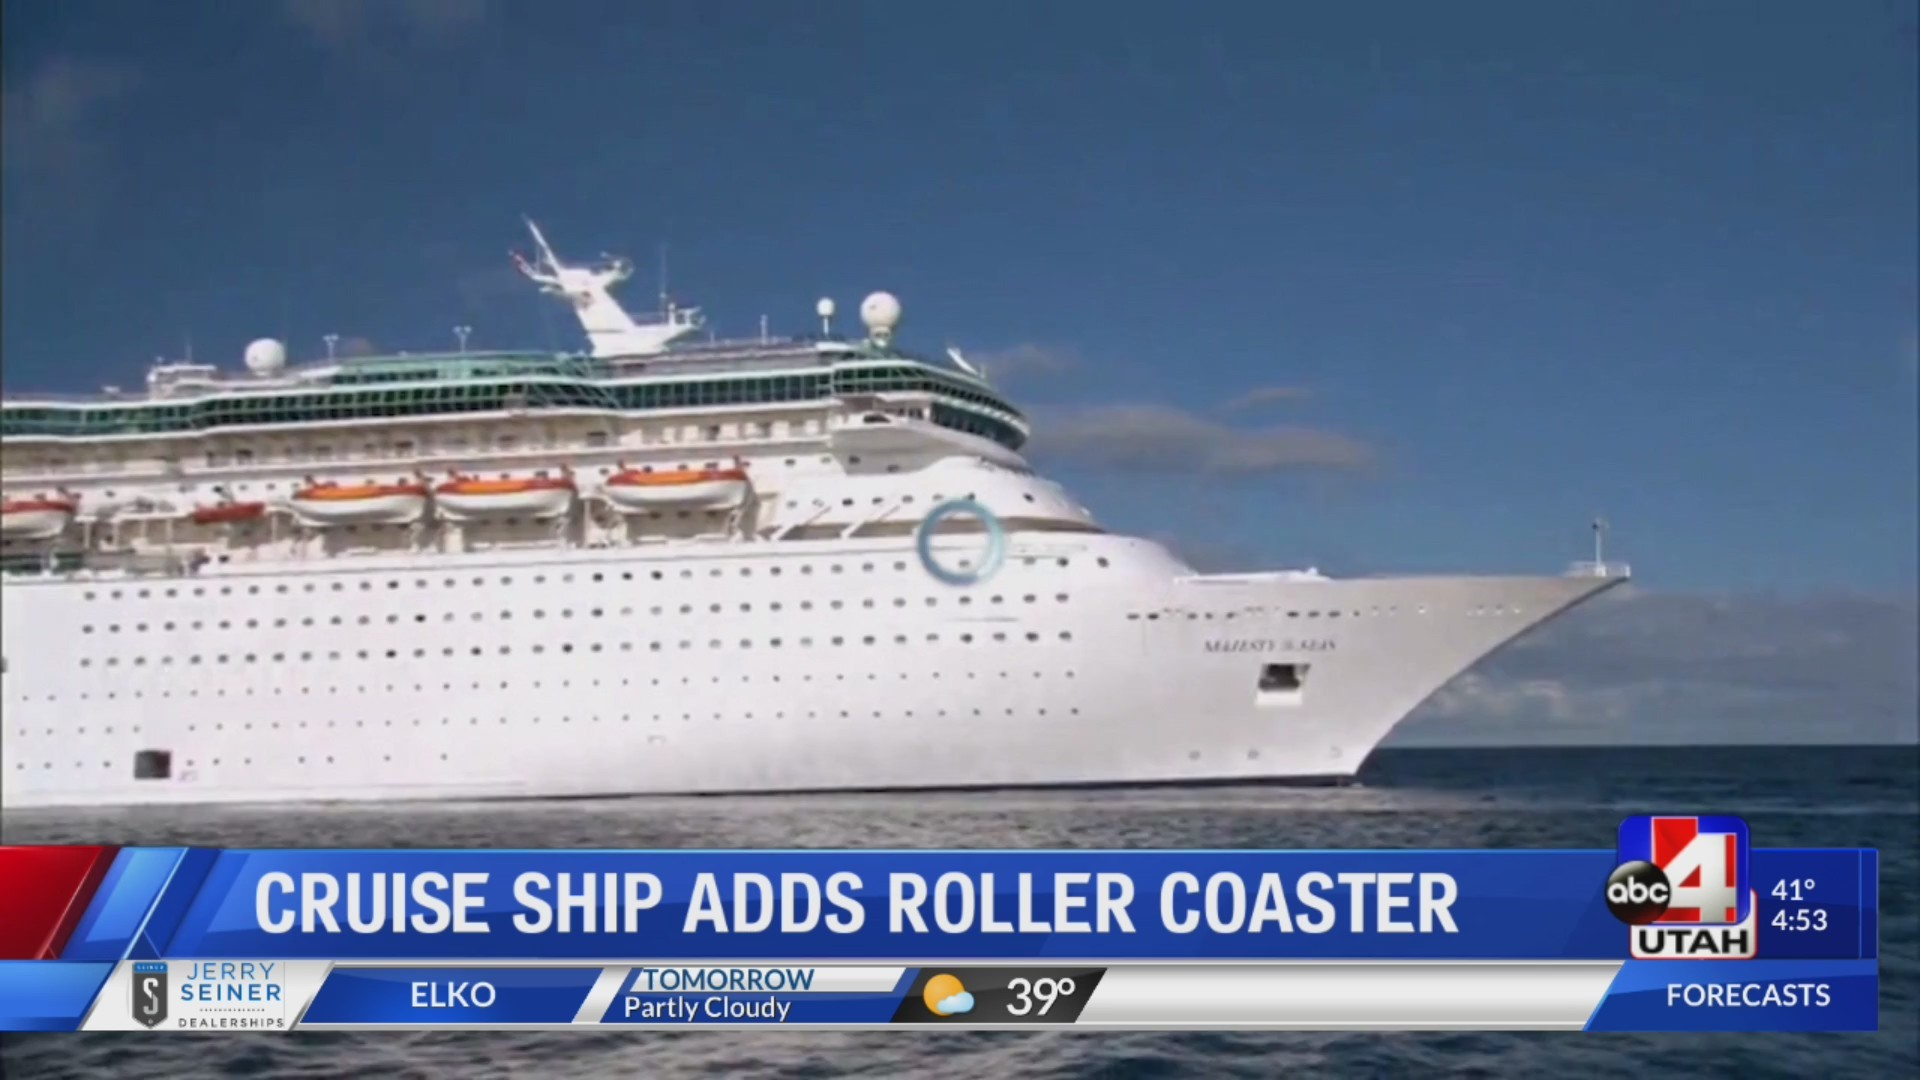 Certain cruise ships are getting roller coasters